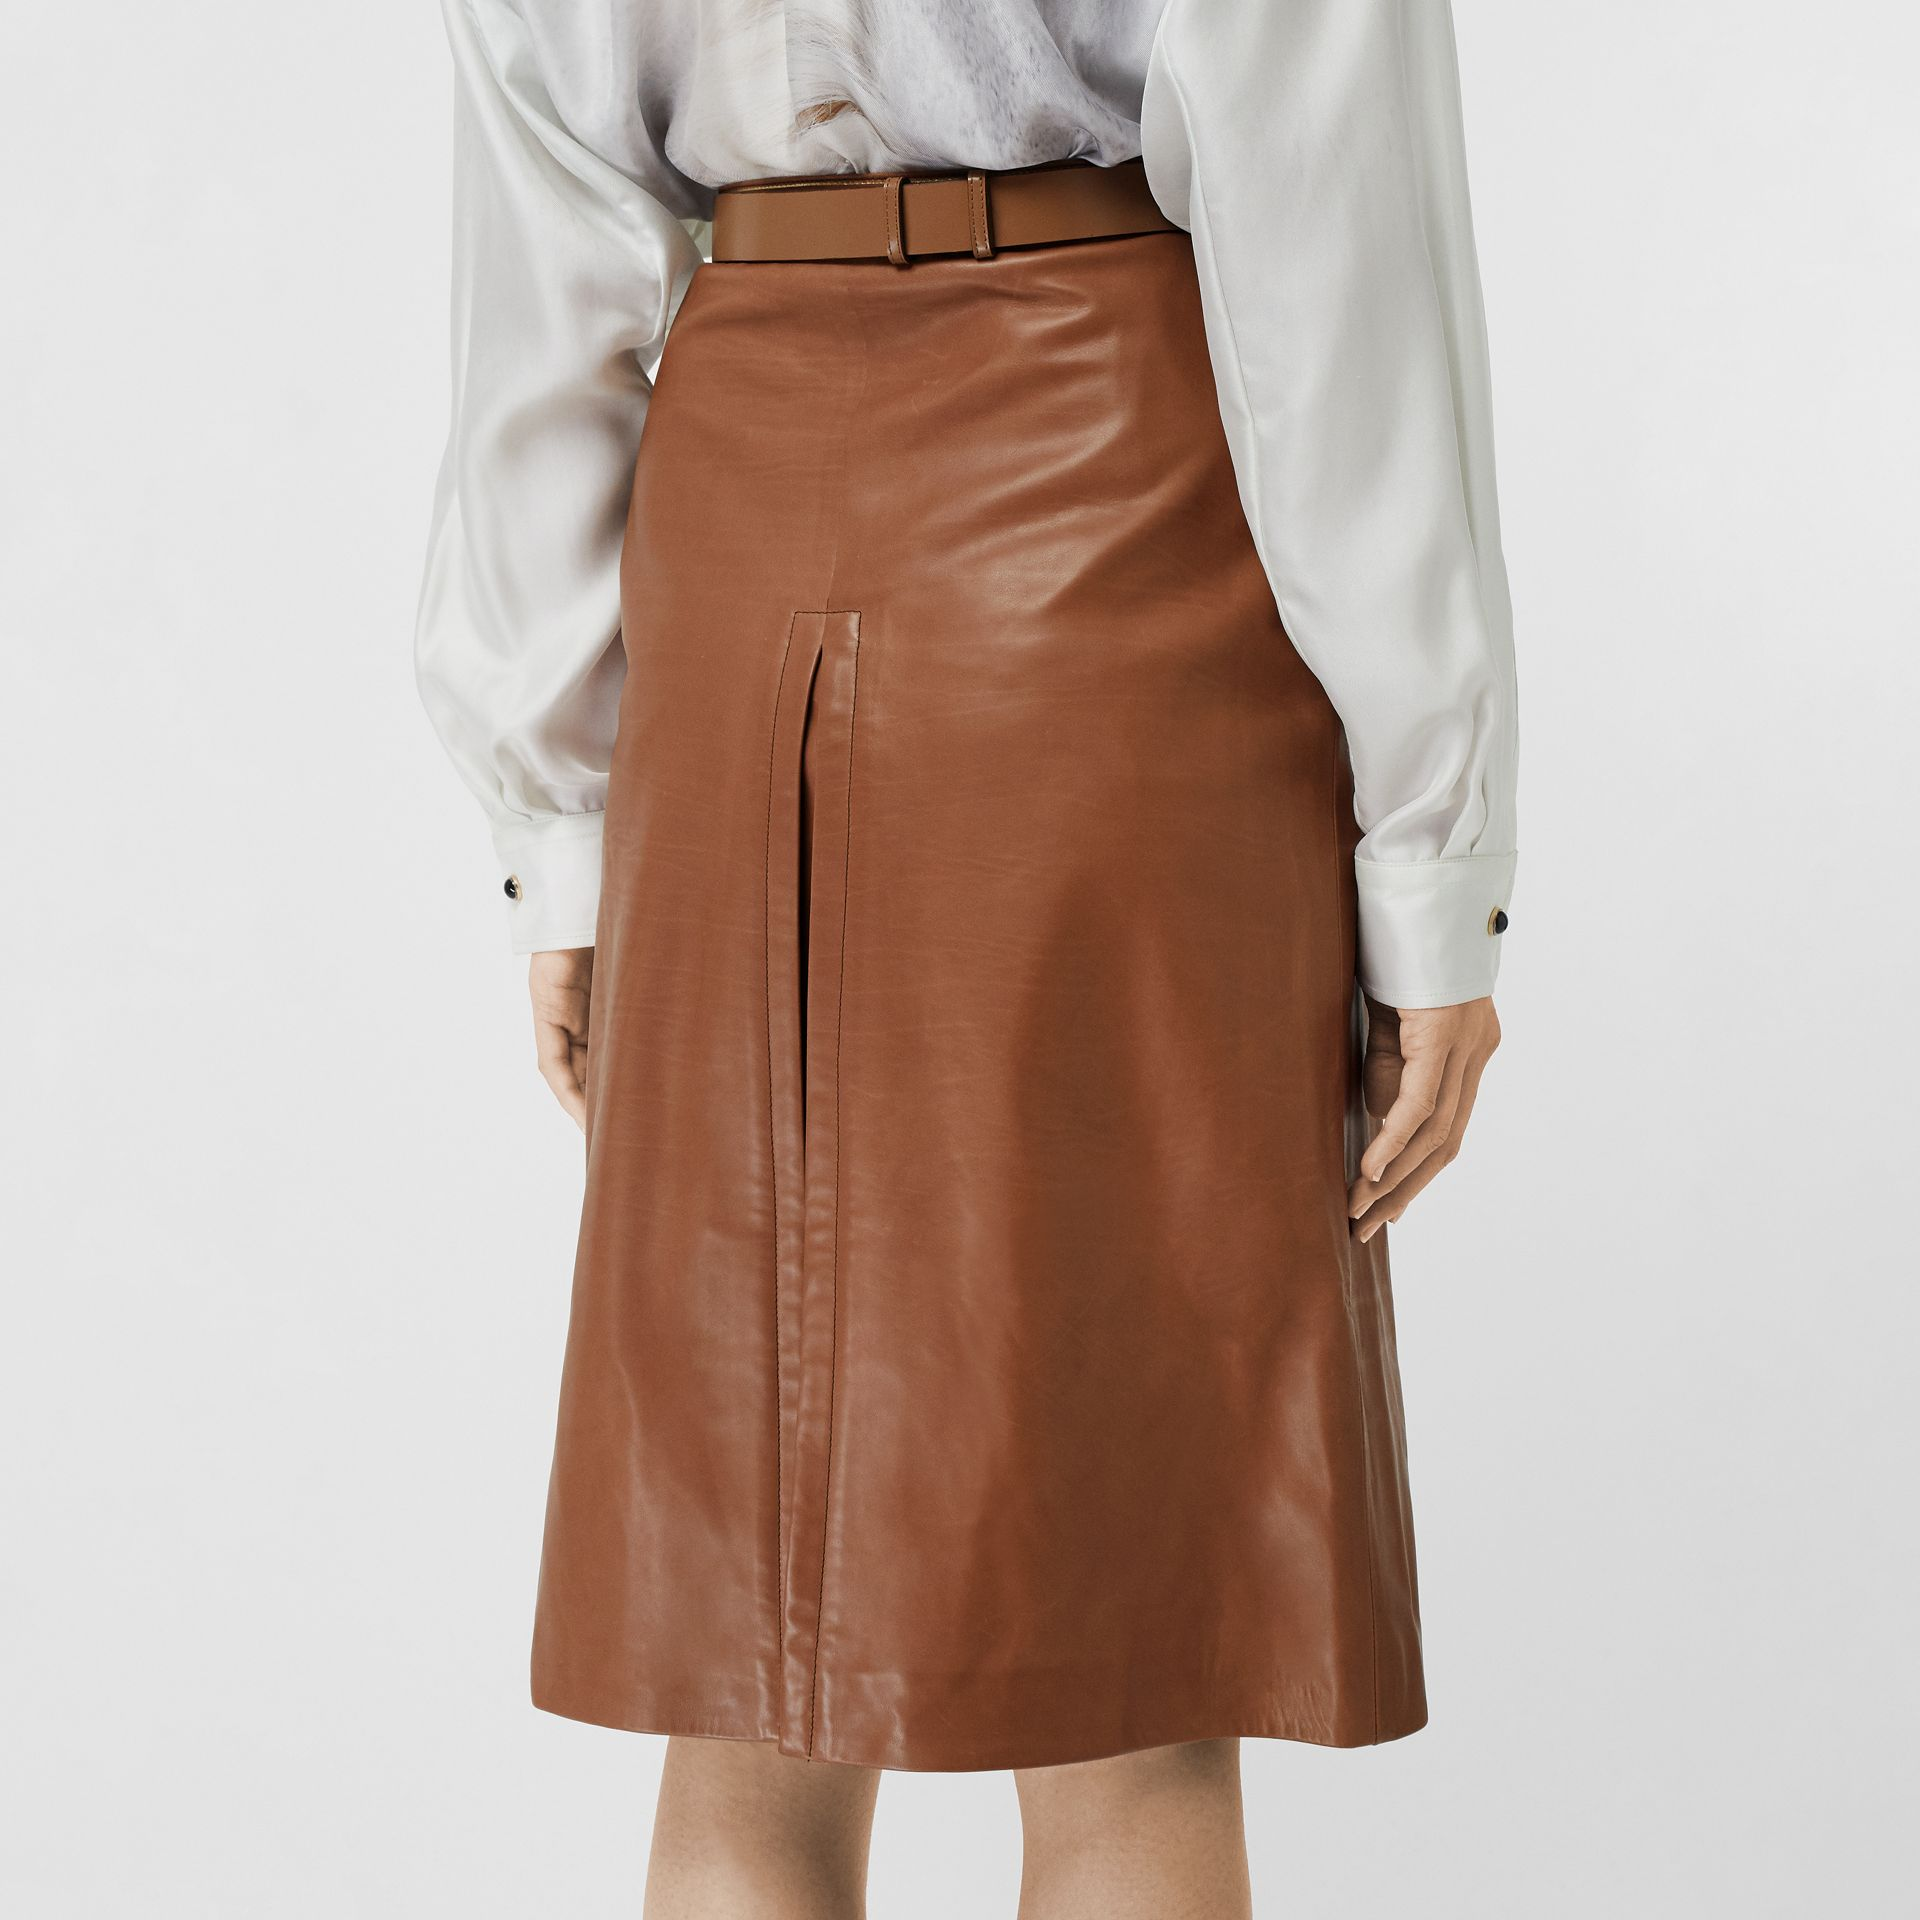 Box Pleat Detail Leather A-line Skirt in Flaxseed - Women | Burberry Canada - gallery image 2